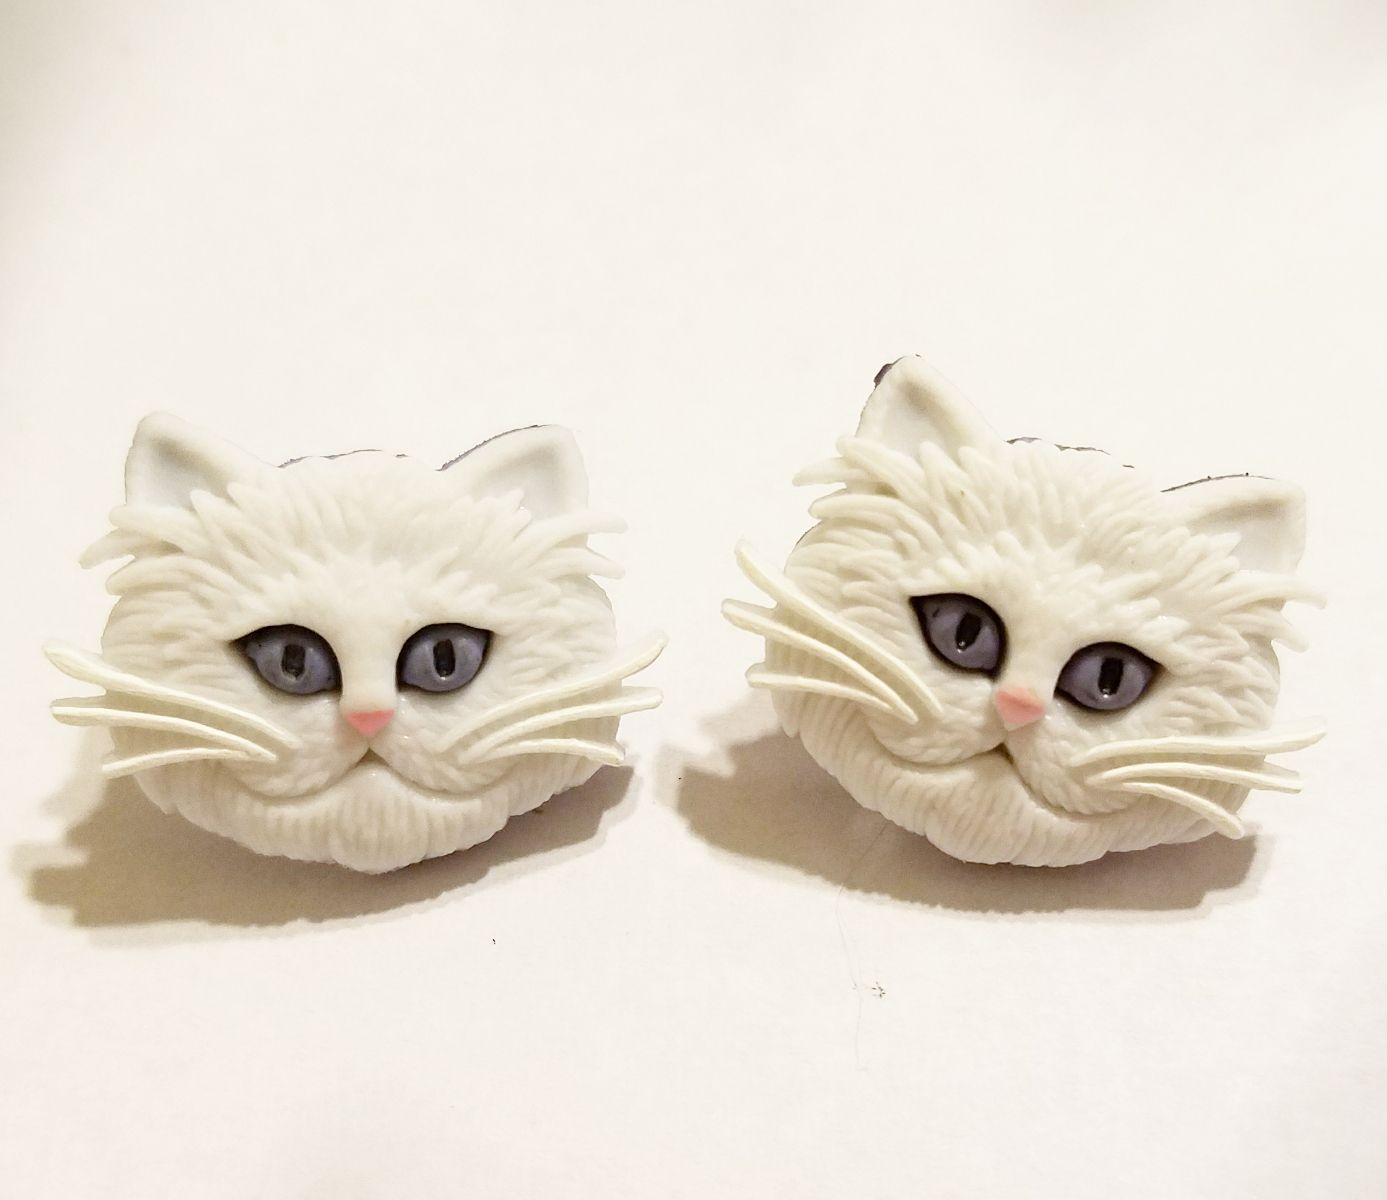 earrings cats jewelry kriszcreations giftsforher whitecats un9